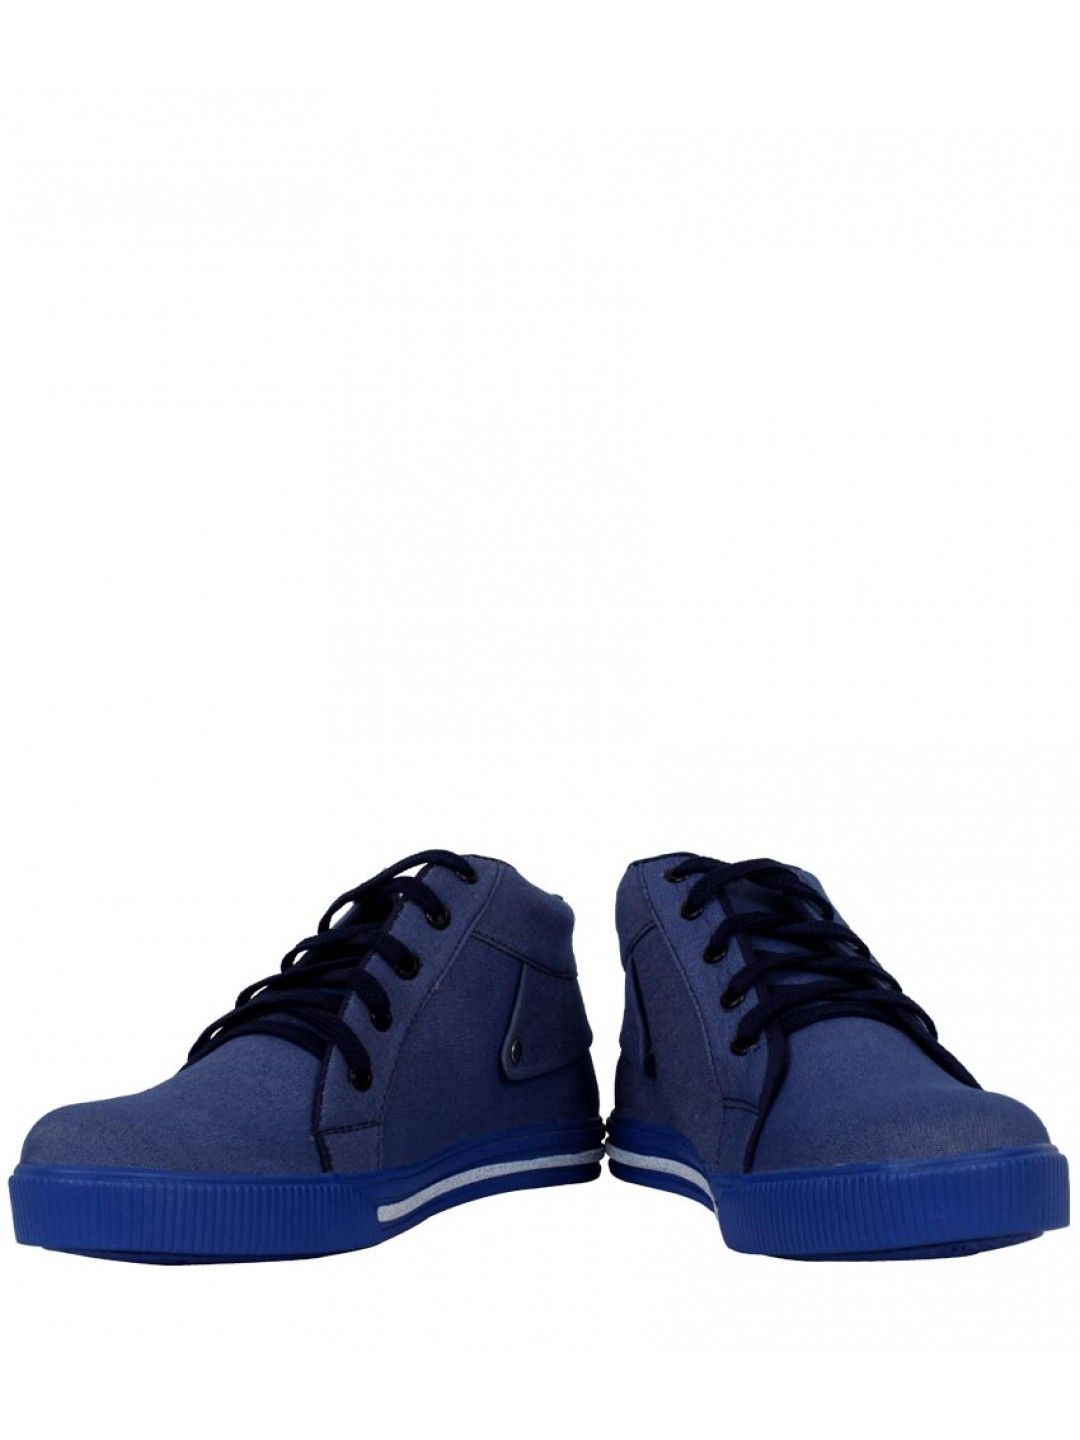 Elvace Blue Canvas Sneakers Men Shoes -  Buy Online Elvace Blue Canvas Sneakers Men Shoes Wear matching Footwear to look superb and trendy with this ultimate pair of Elvace Blue Canvas Sneakers Men Shoes, Classy, comfortable and contemporary crafted by skilled workmanship. Crossing over the foot, take a step into a sensuous, stylized, confident and mod way at Click2Door.